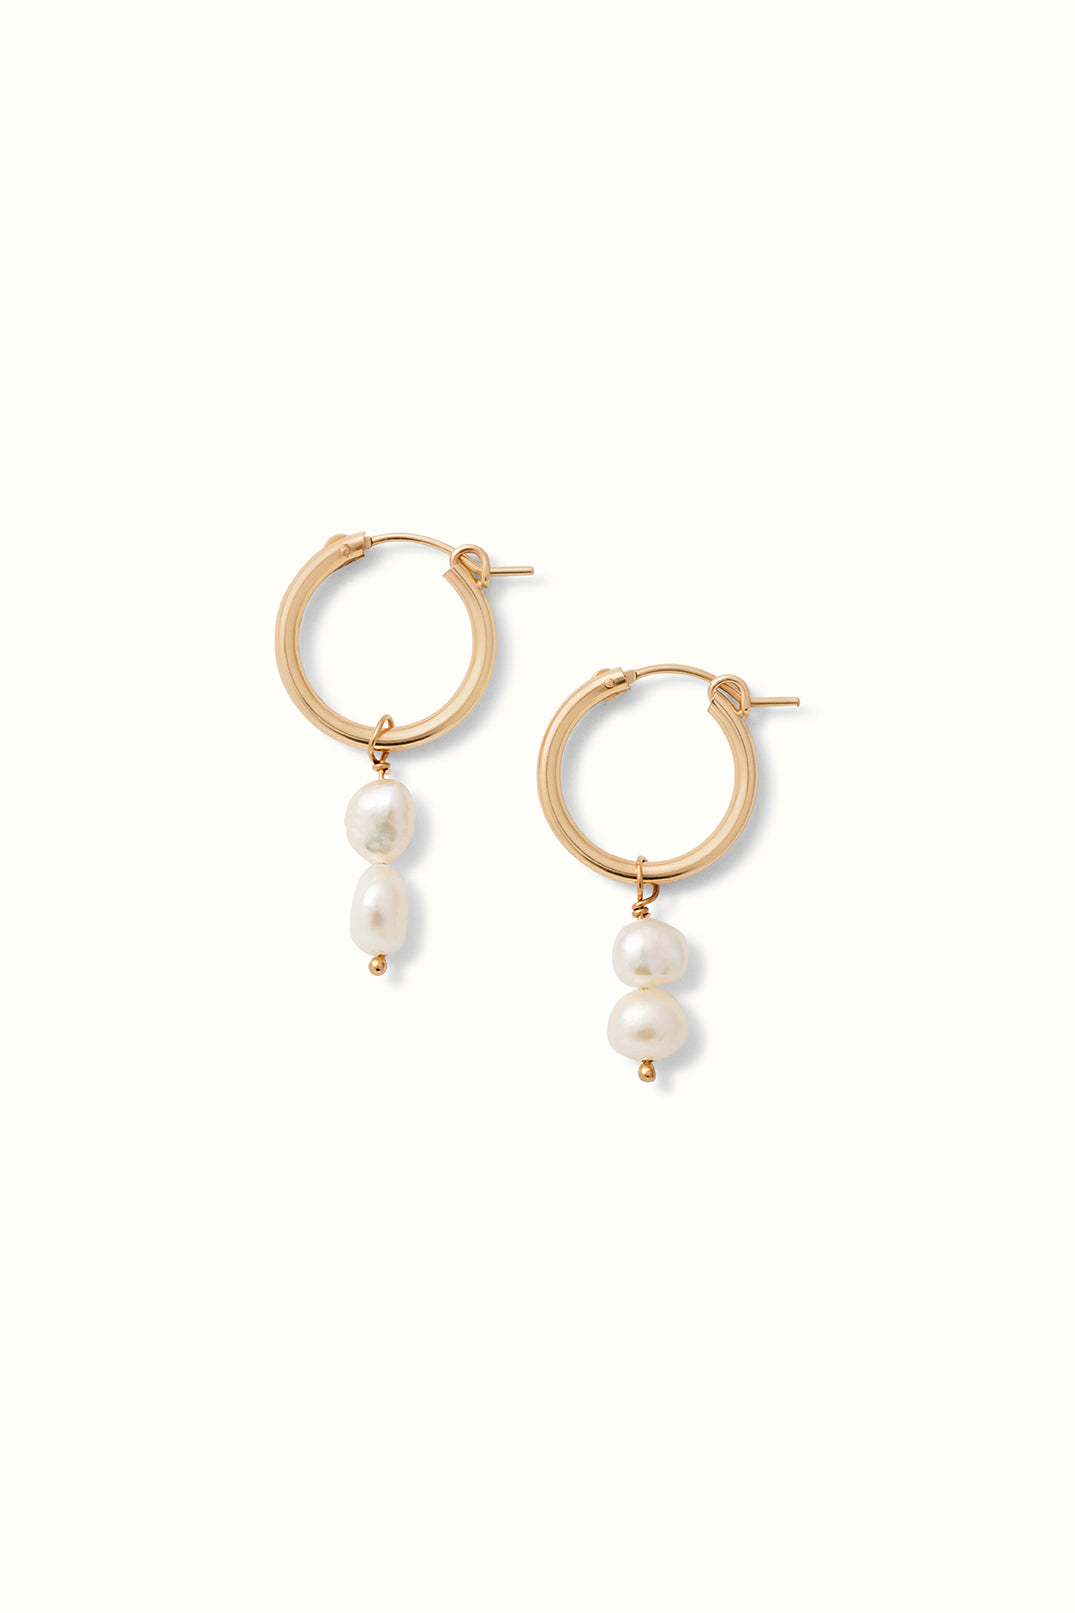 a product shop of a set of gold filled hoops with a pearl drop